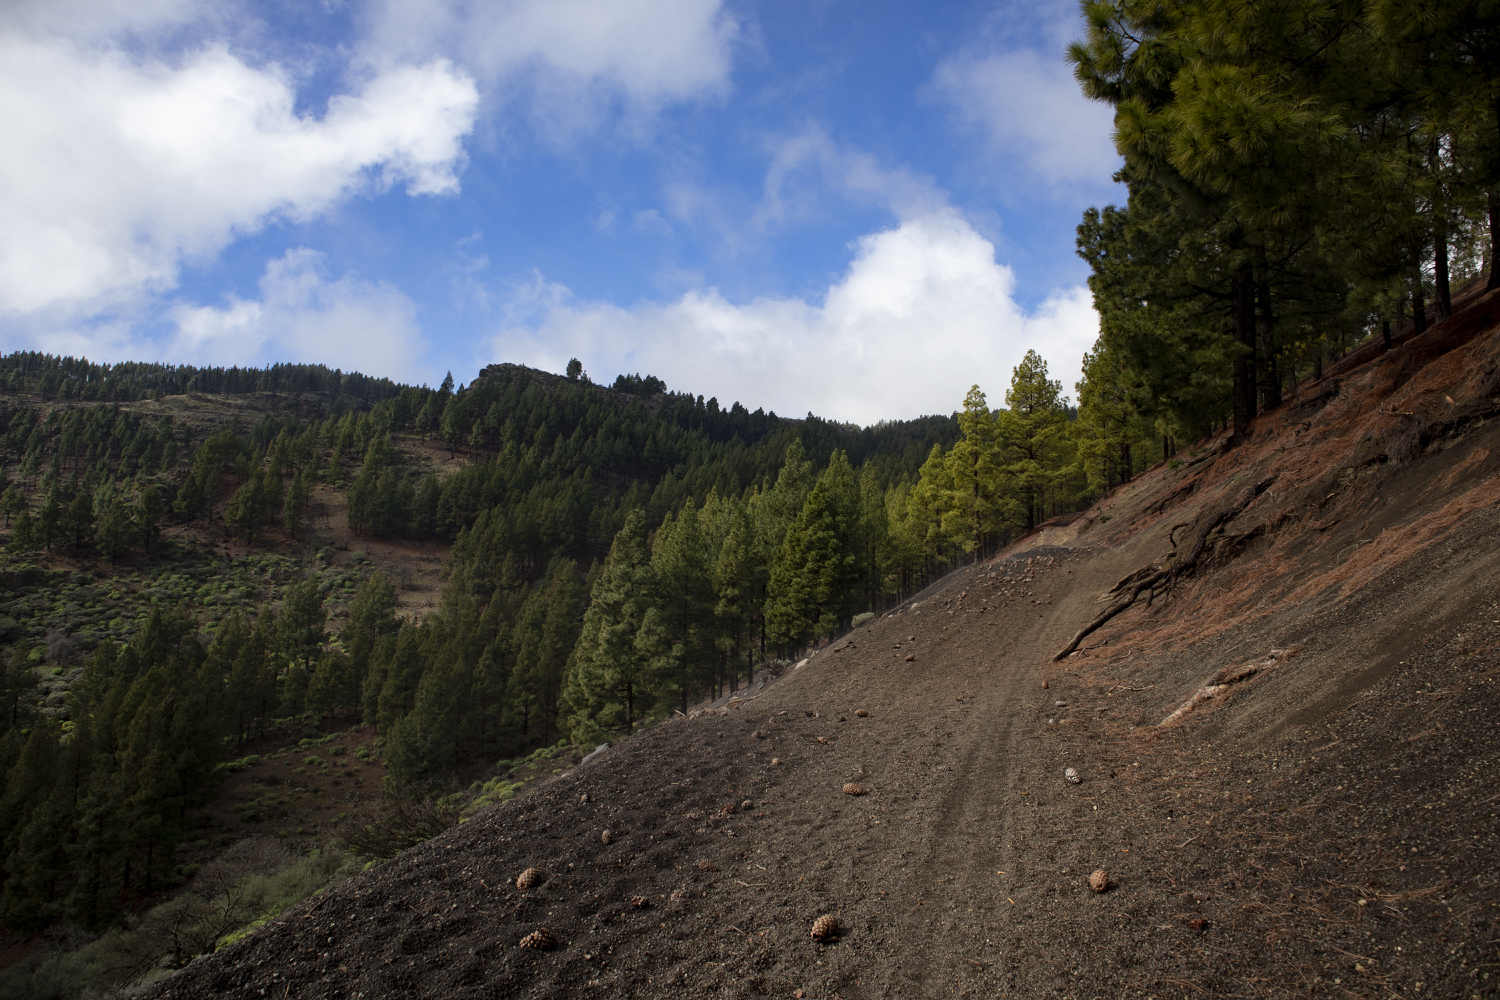 Hiking trail on the slopes of the Caldera de los Marteles